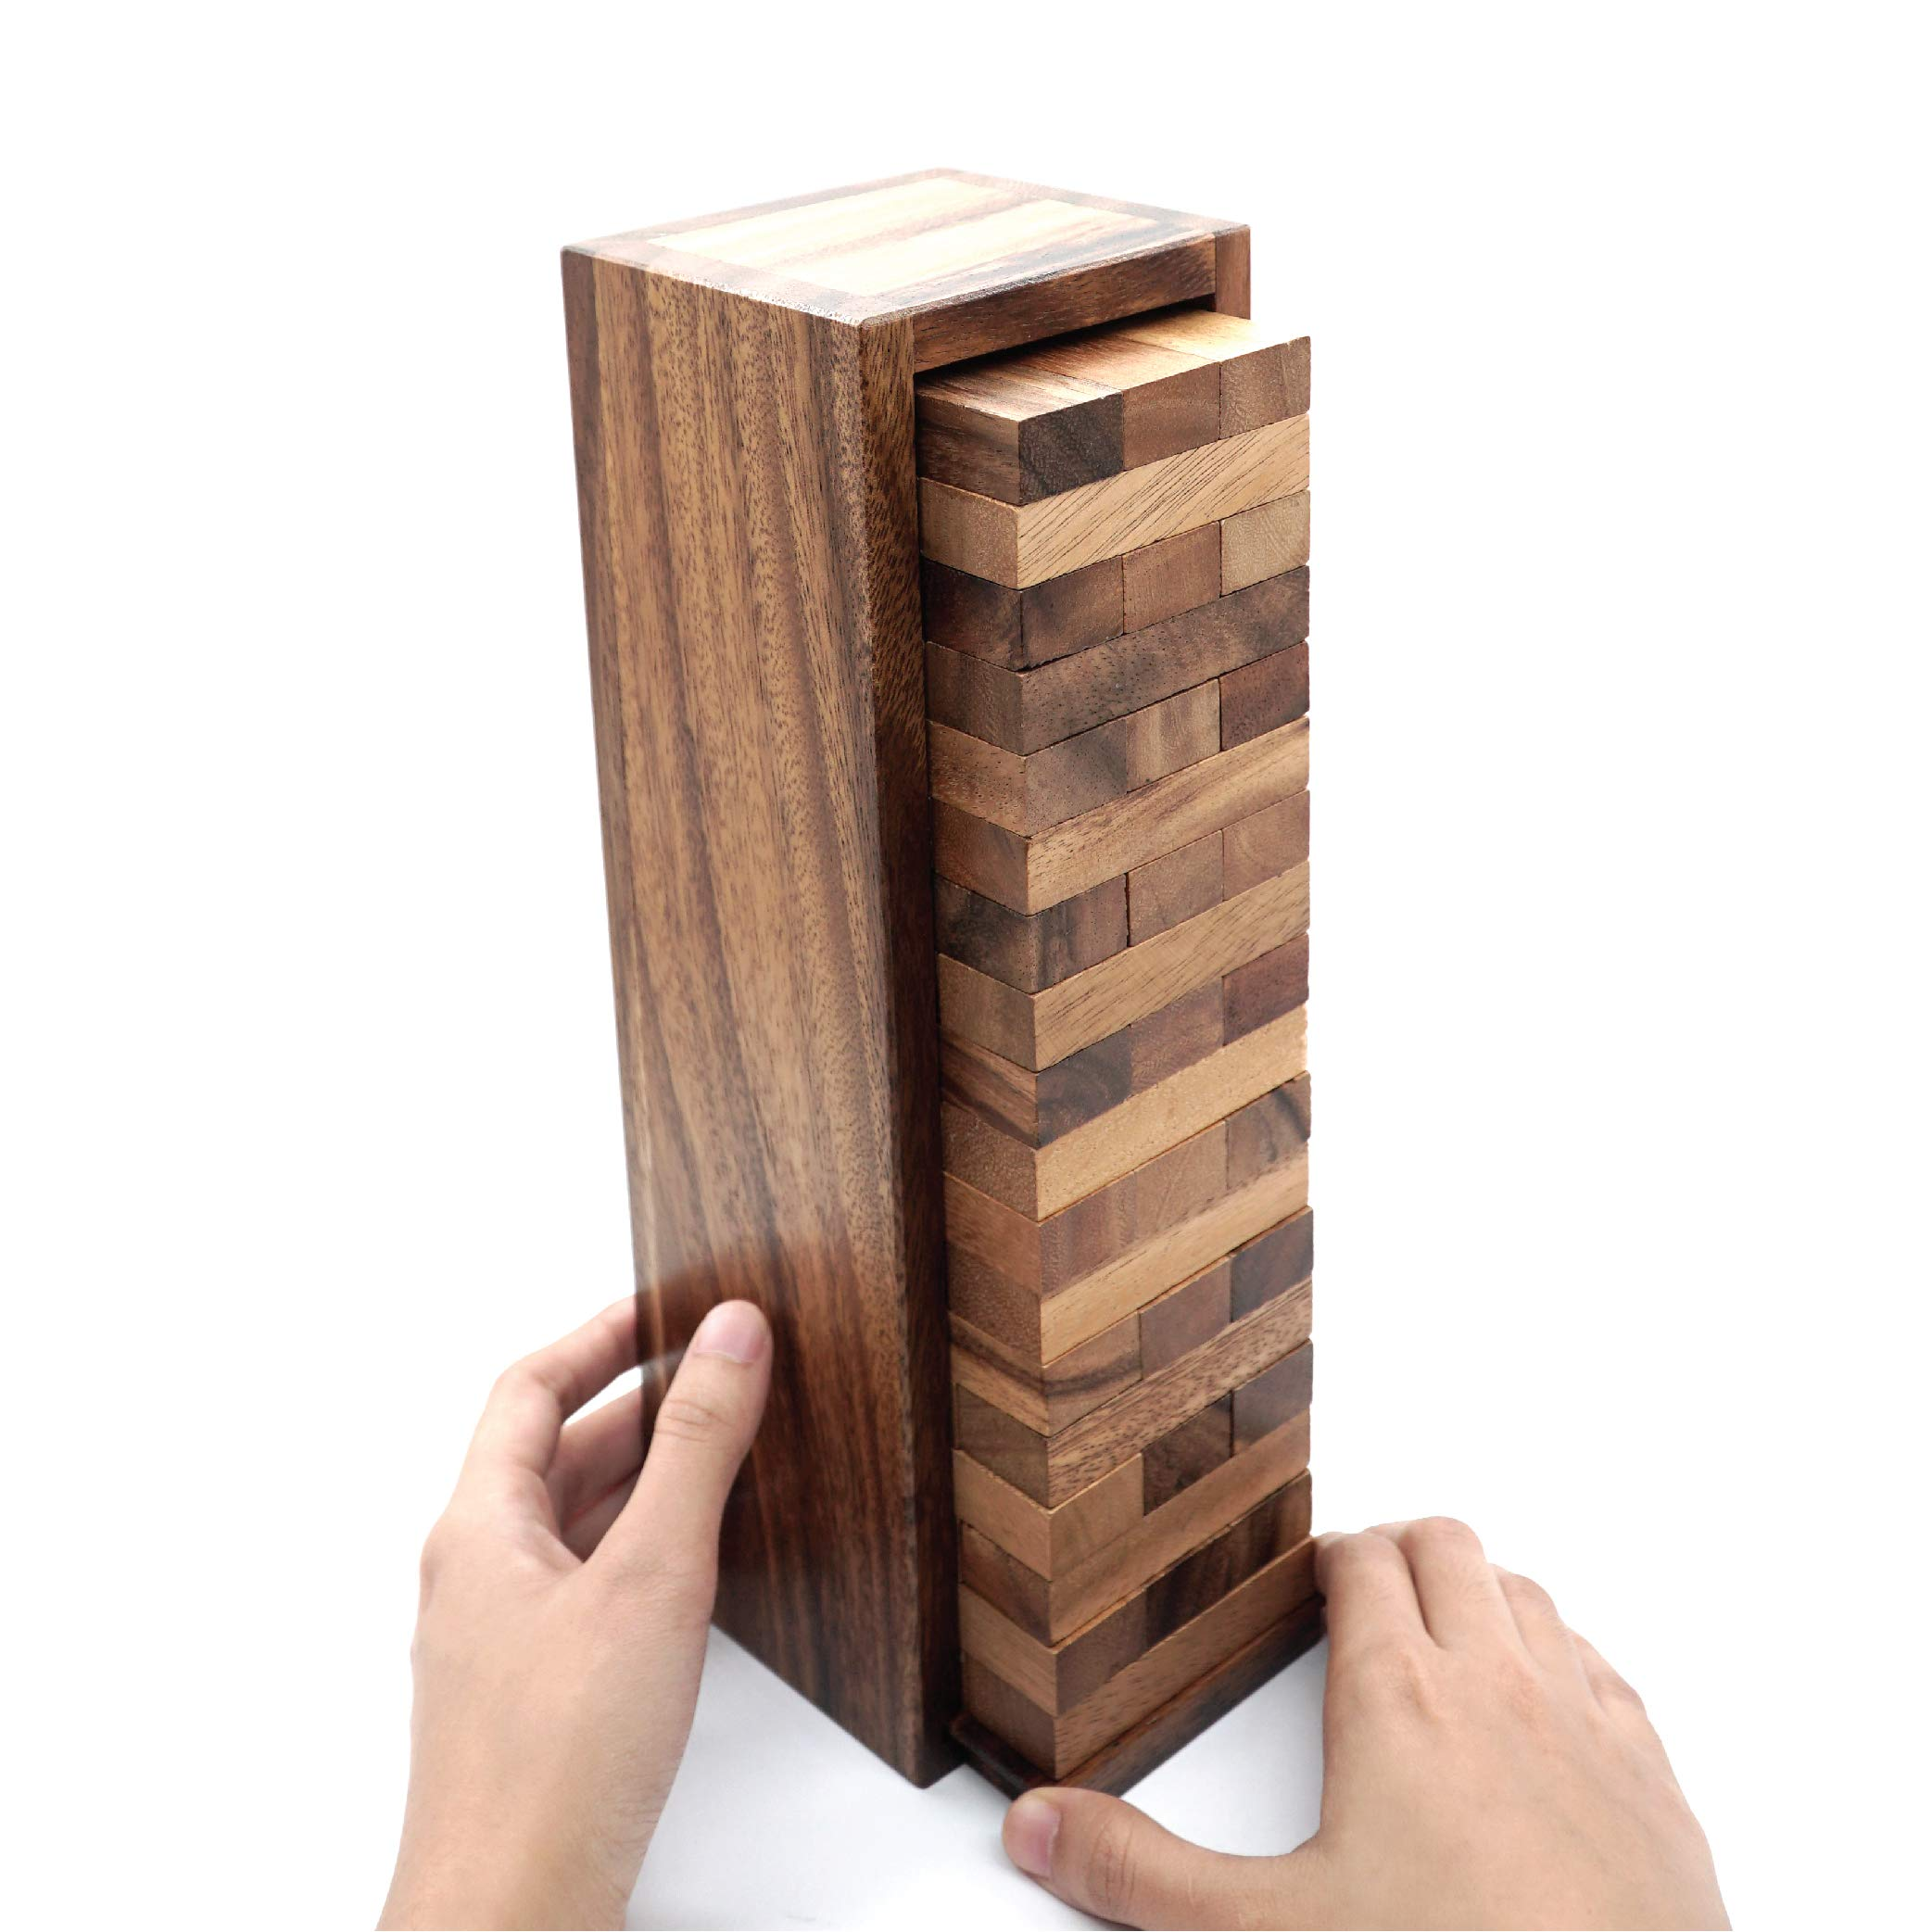 Board Games for Families and Kids with a Stacking Block Games of Tumbling Tower Game Classic Wood that Will Challenges Your Skills in Adult Kids and Family to Get Fun Day and Night by BSIRI